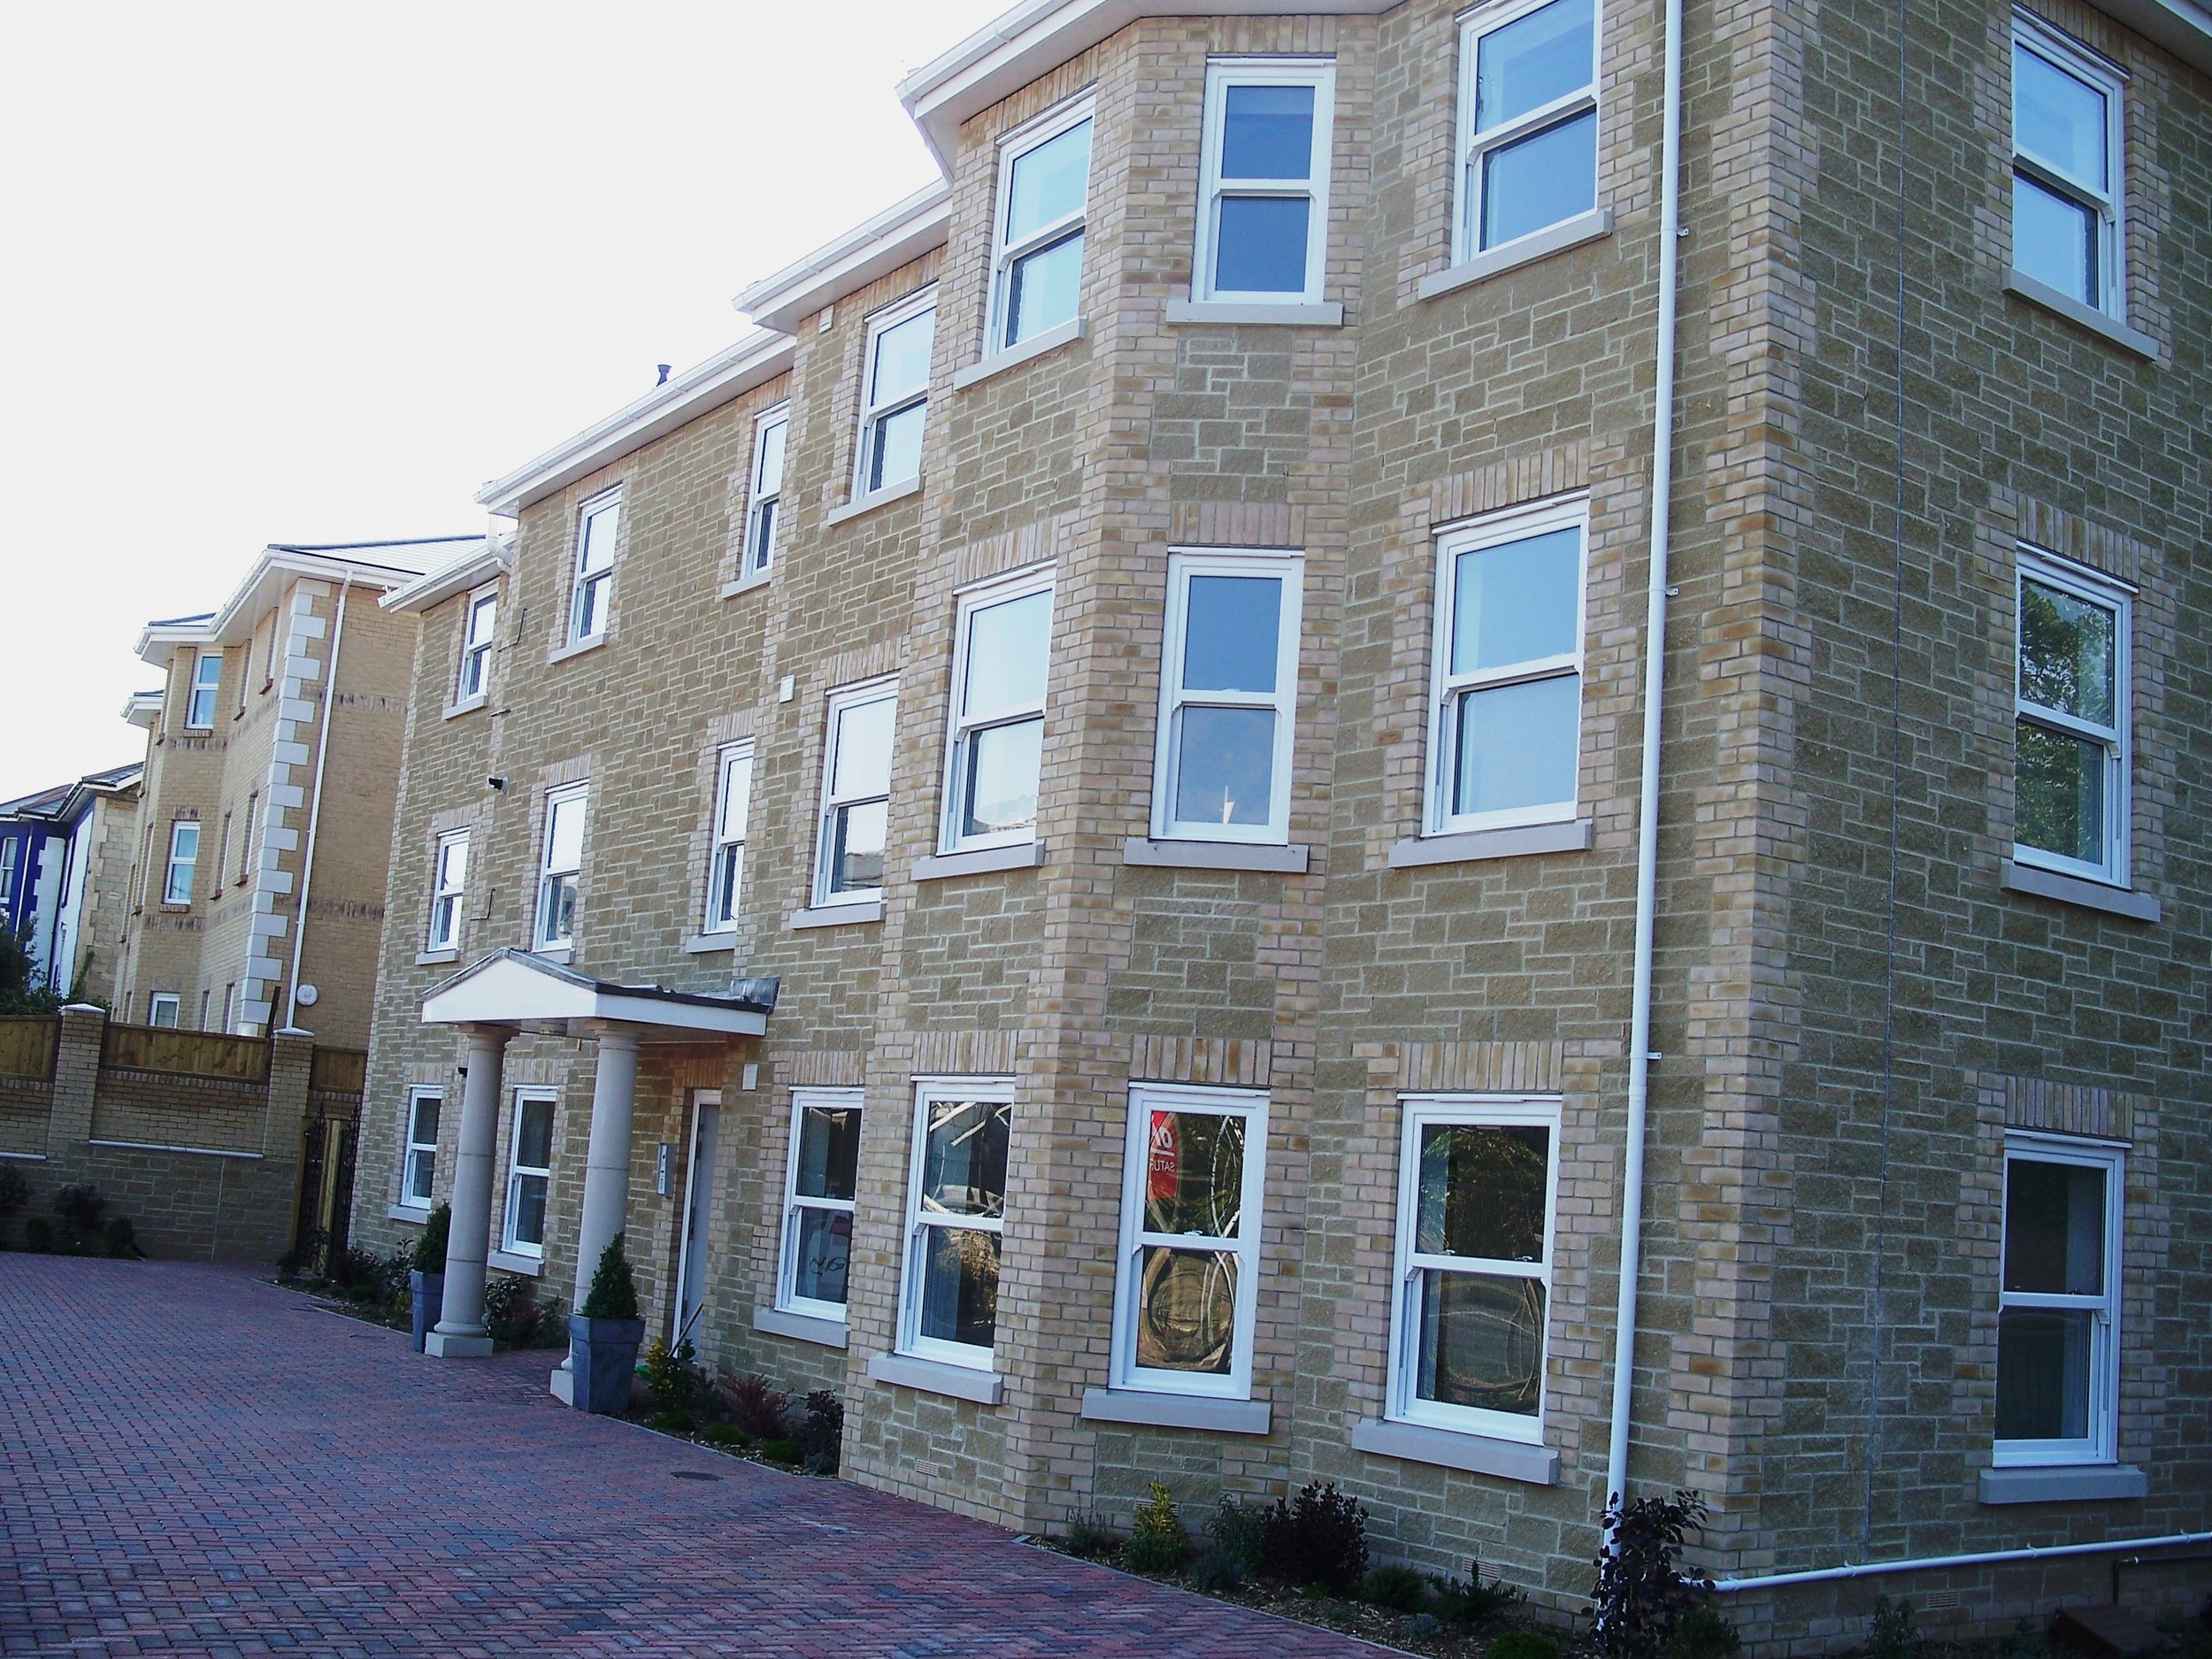 Flats & Houses - Sandown